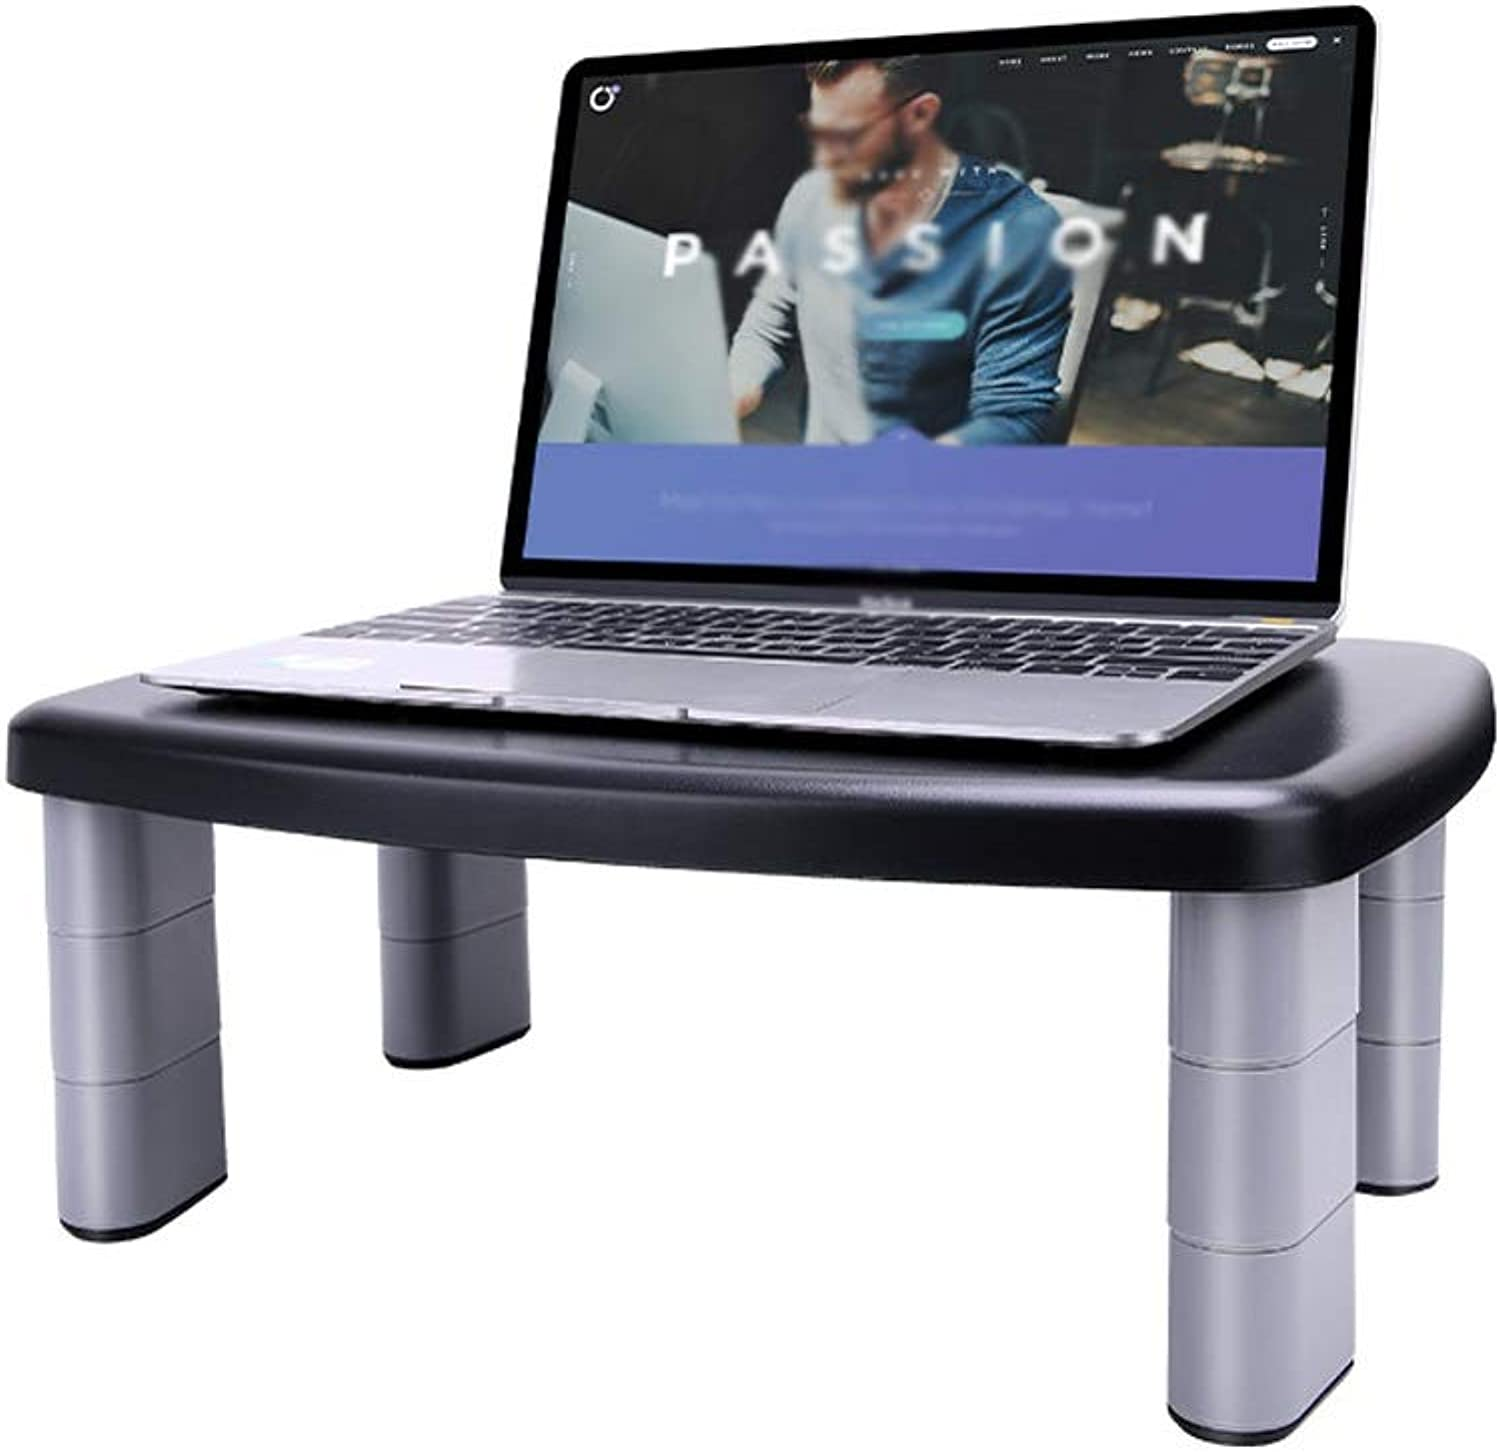 Adjustable Laptop Stand, Laptop, Rack-Mounted Desktop, 15.5-inch Computer Lift Stand